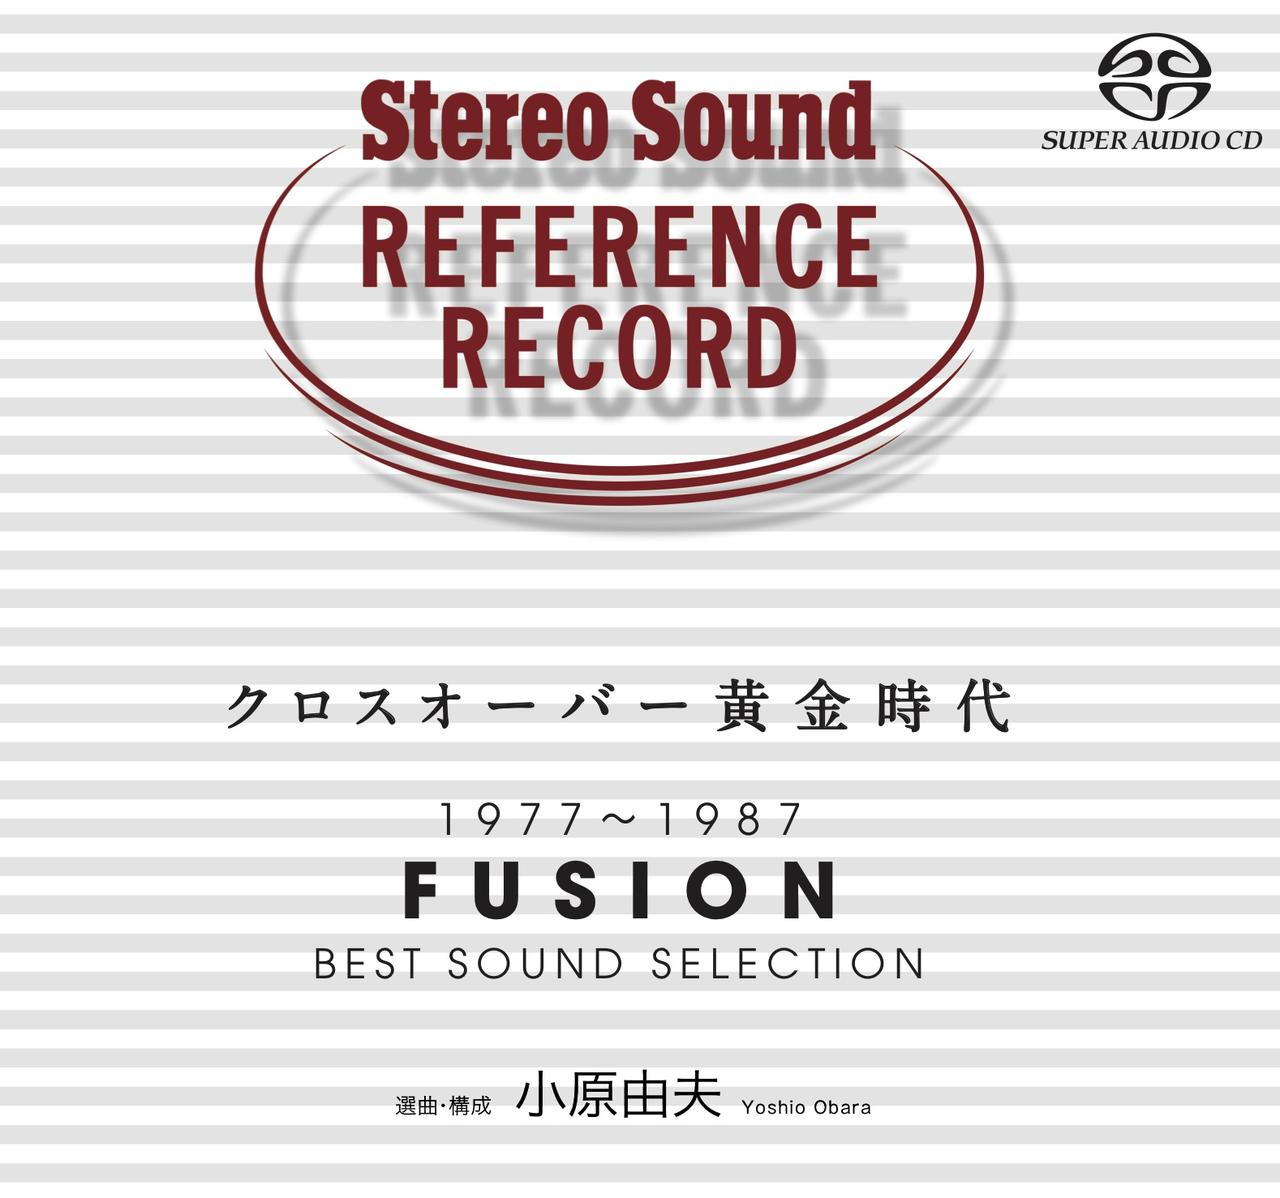 Images : 4番目の画像 - プログラム(1) - Stereo Sound ONLINE